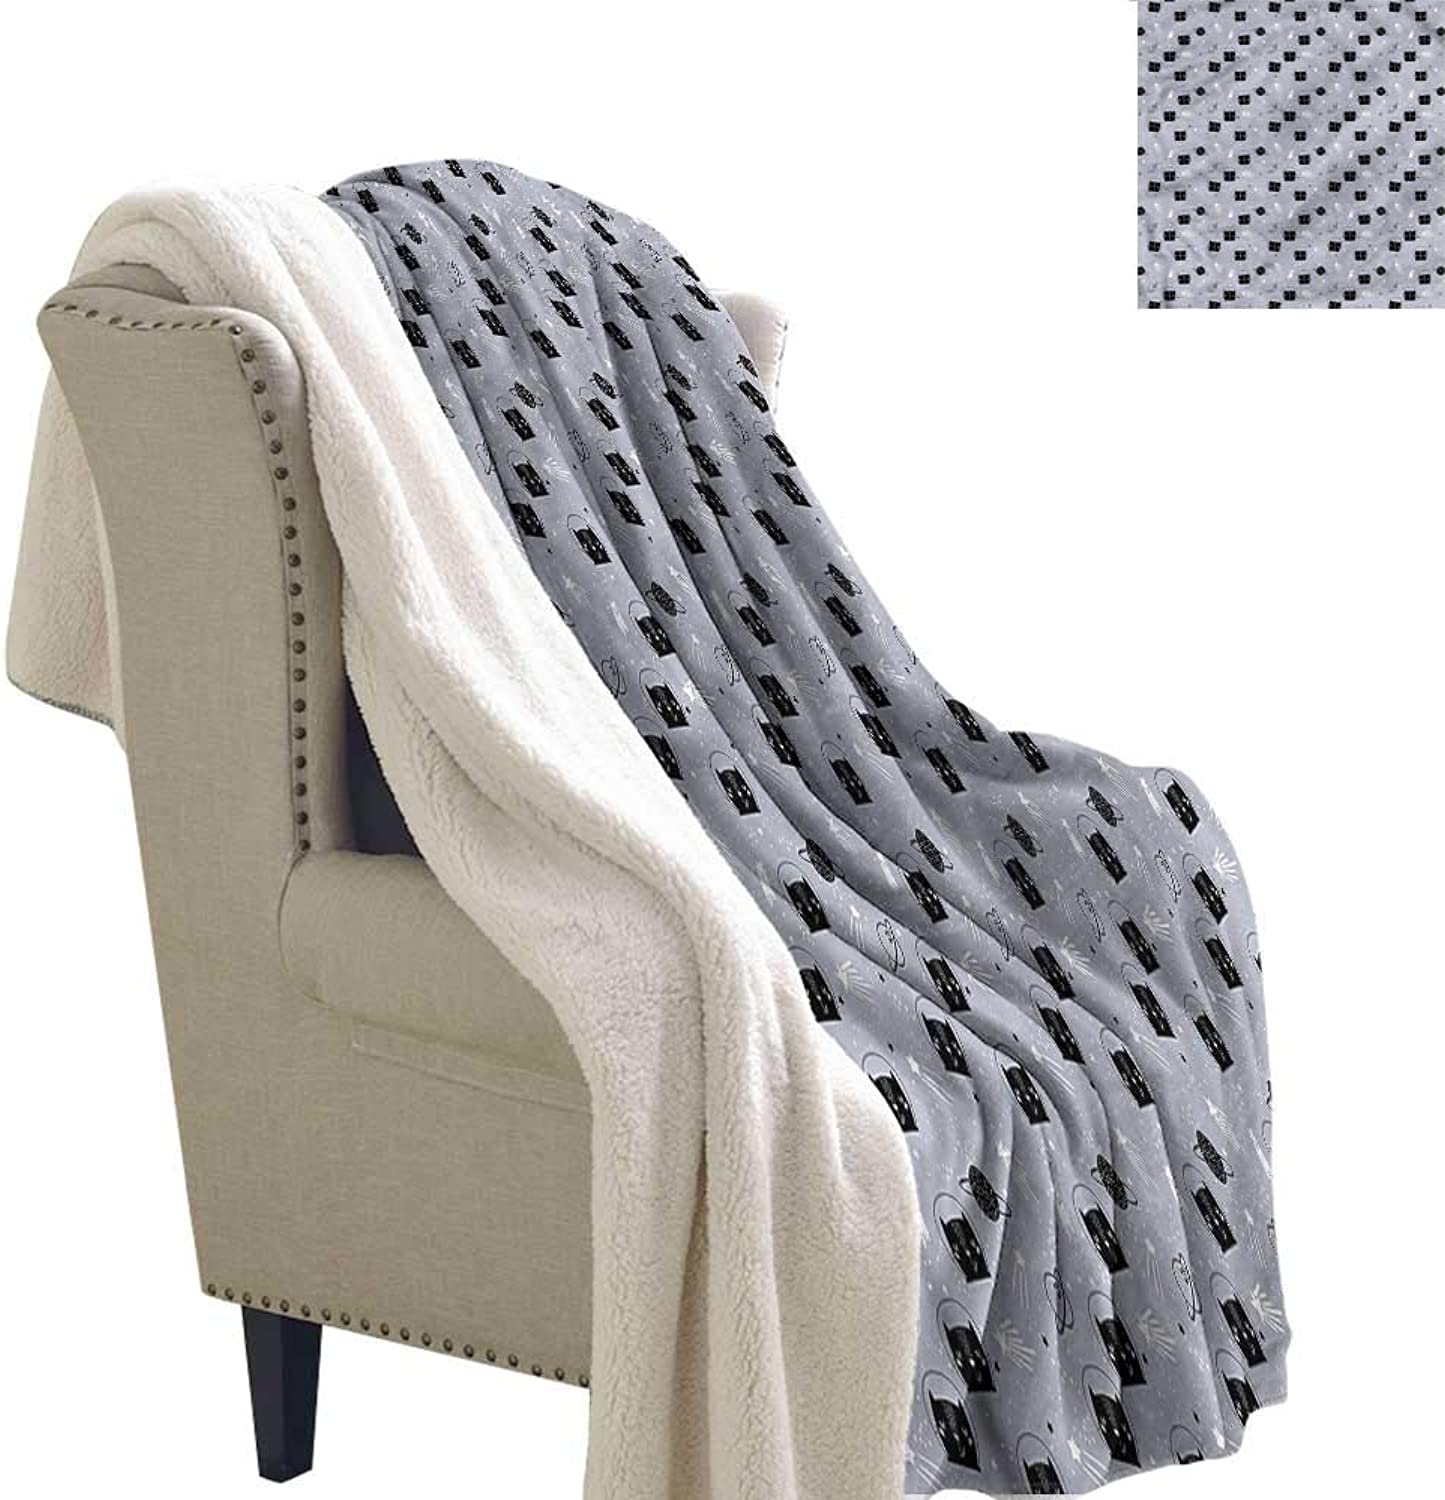 AndyTours Lamb Velvet Blanket Outer Space Astronaut Cats Reversible Blanket for Bed and Couch W59 x L31